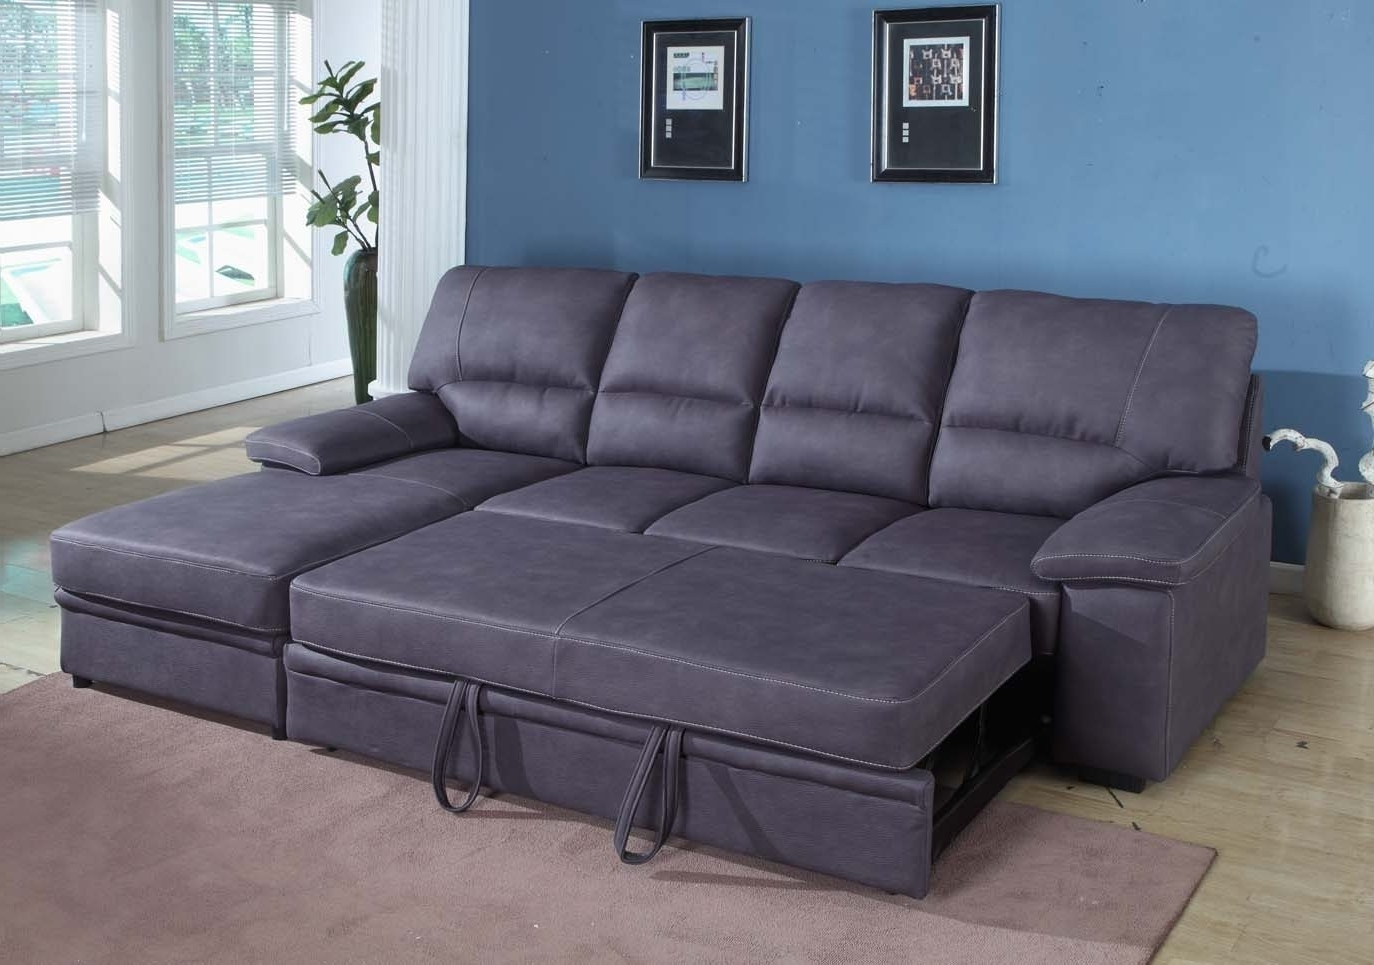 Sofa : Double Size Sleeper Sofa Cheap Pull Out Couch Bed Pull Out For Preferred Pull Out Beds Sectional Sofas (View 17 of 20)